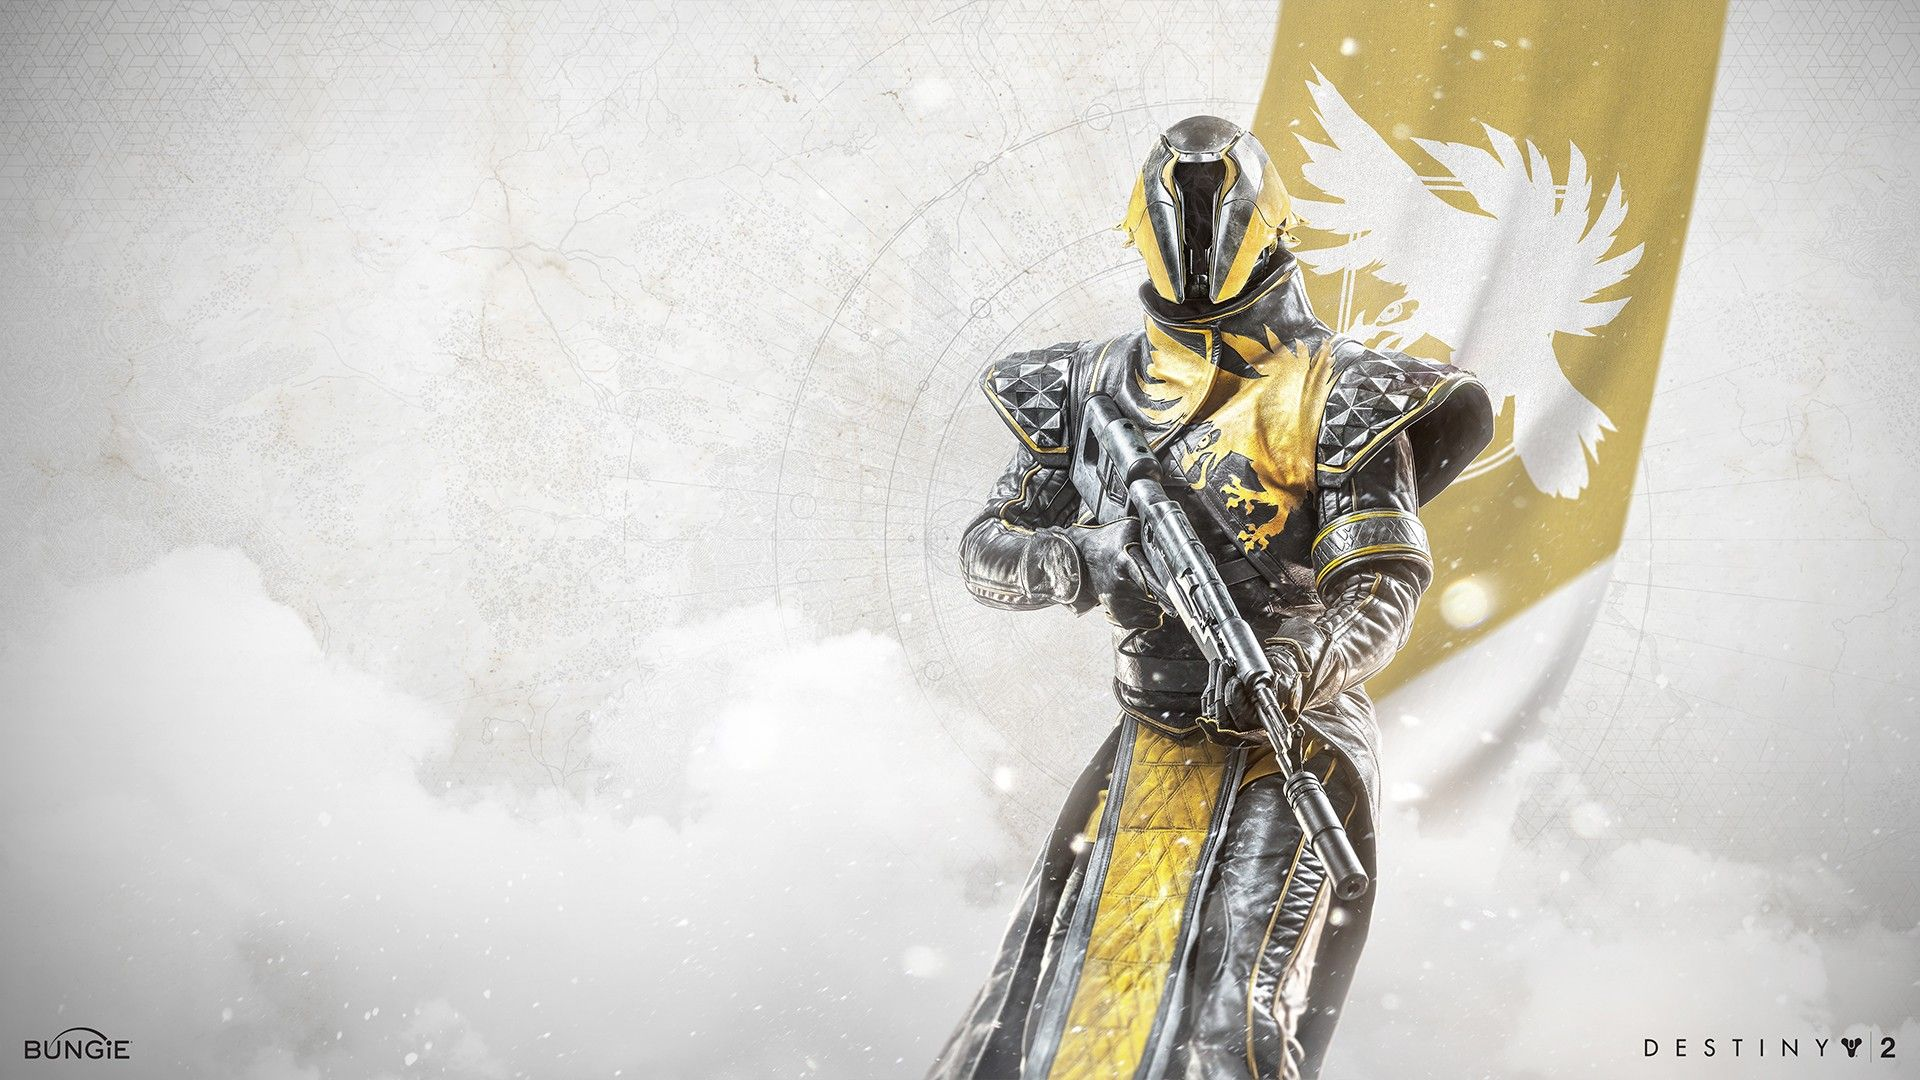 Destiny 2 Wallpaper 4K Wallpaper 4k desktop wallpapers 1920x1080